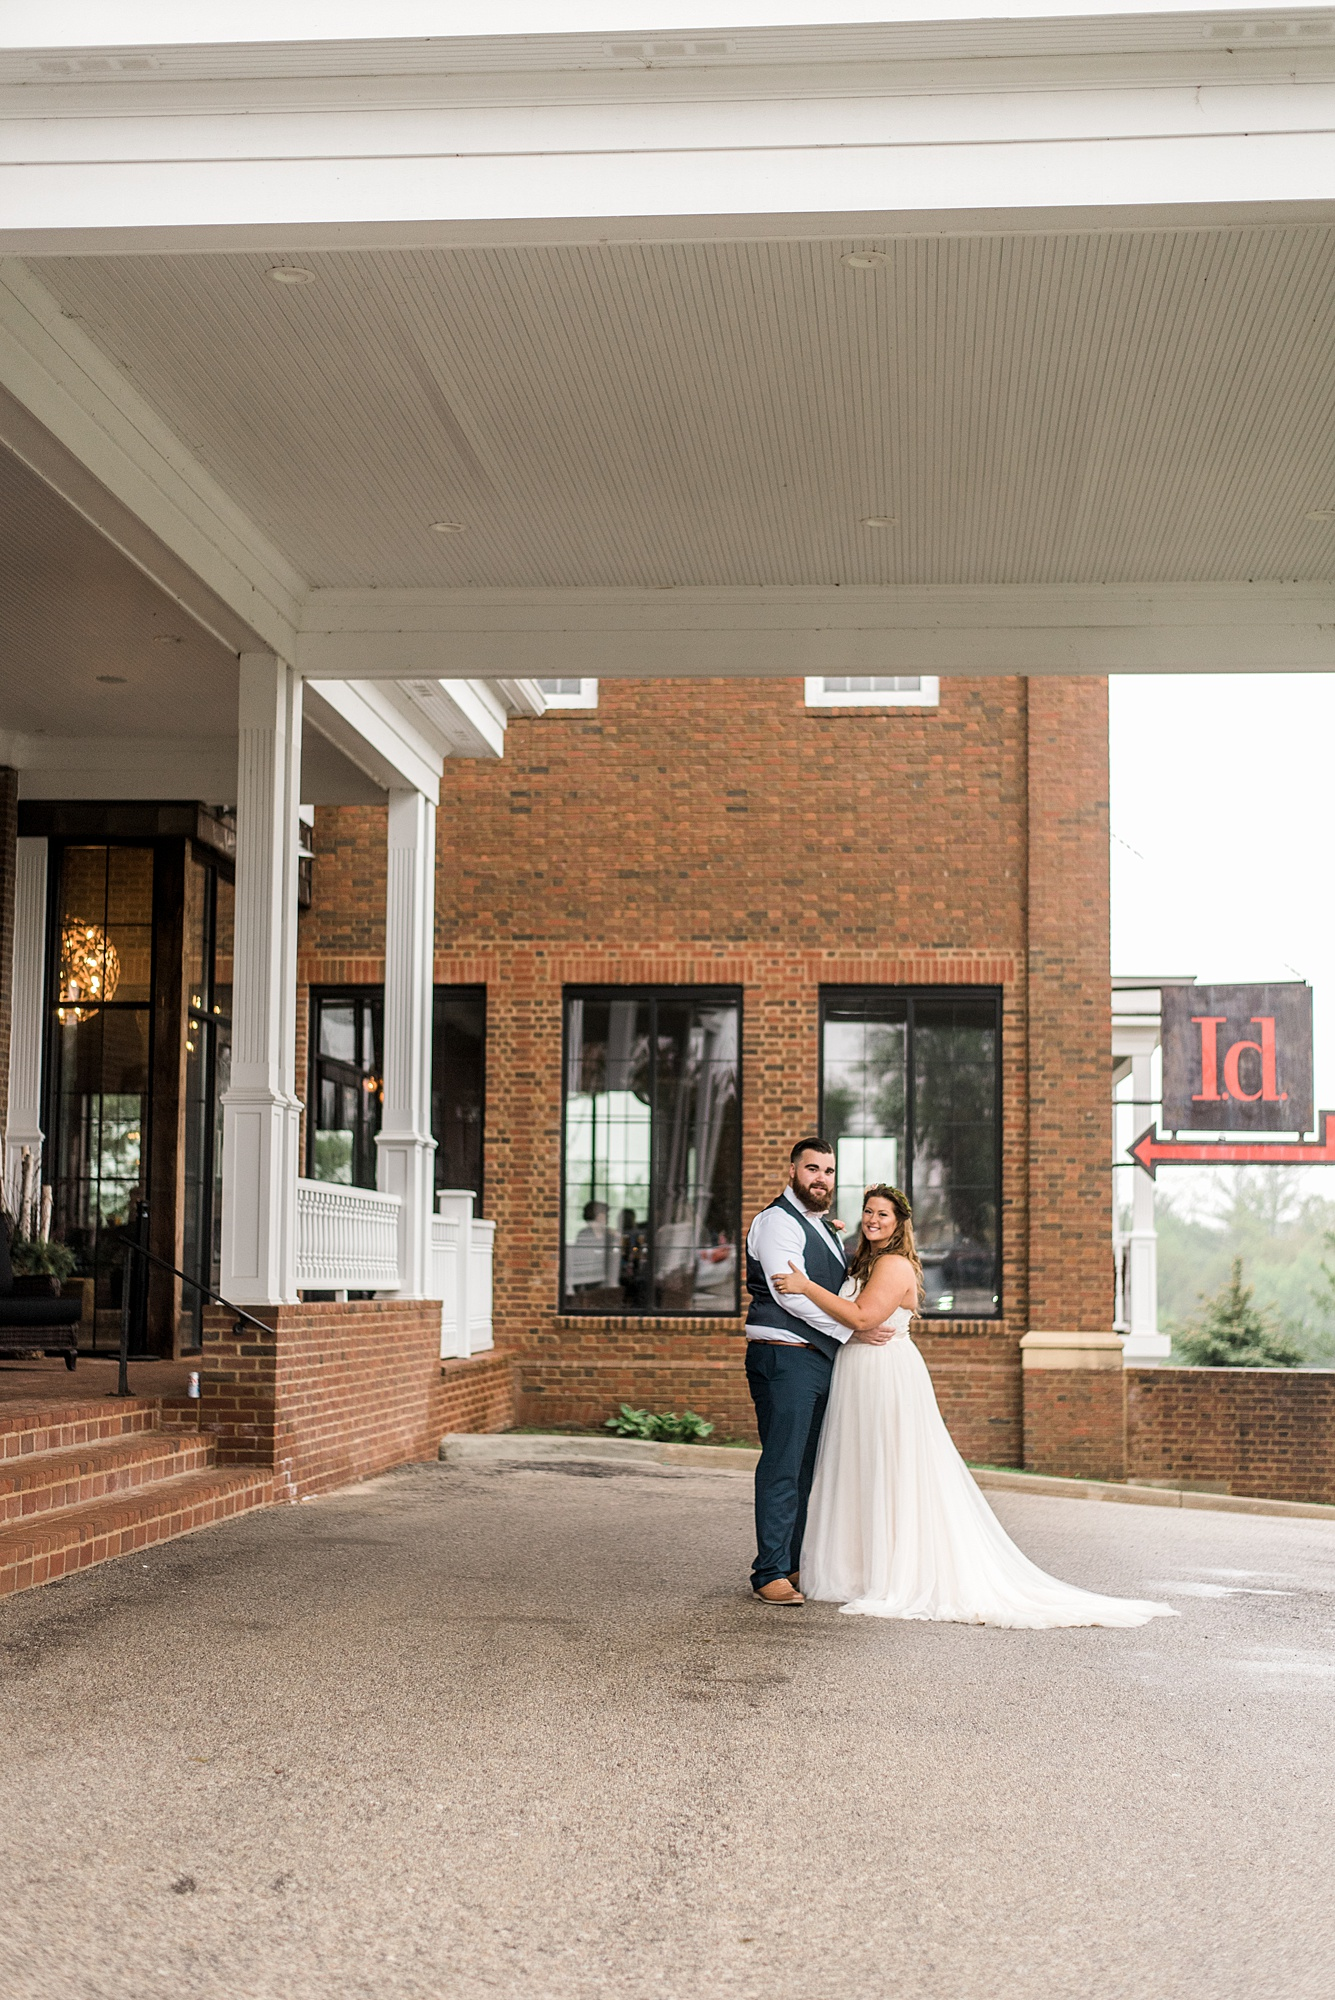 CHICAGO-WEDDING-PHOTOGRAPHER-WEB-DESIGNER-ENGAGEMENT-LISH-MARIE_0291.jpg